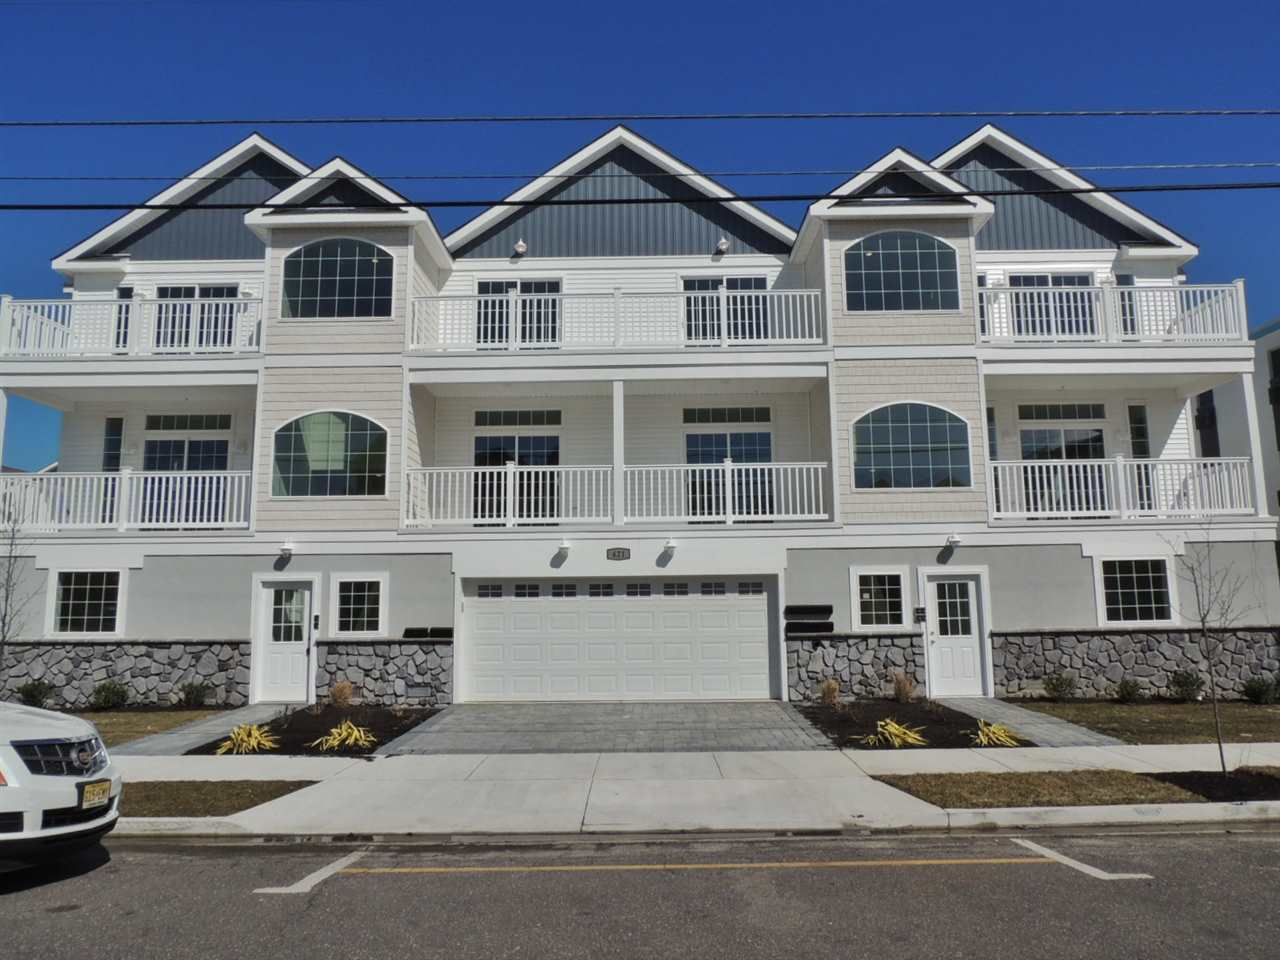 421 E 23rd Avenue - North Wildwood